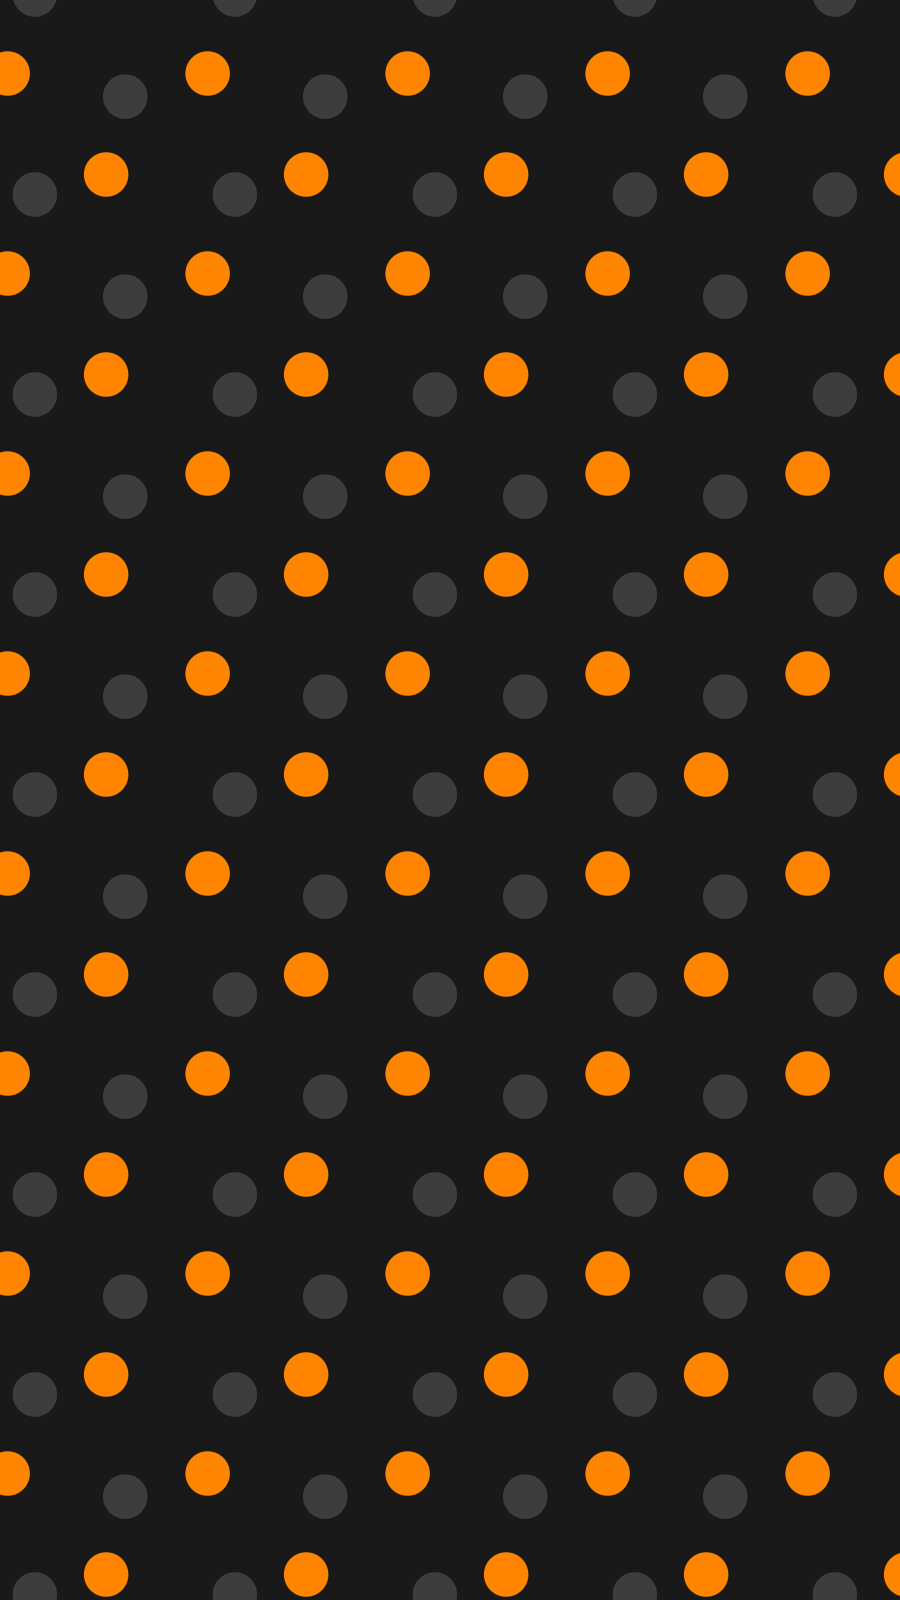 Download Wallpaper Halloween Polka Dot - bf70555e6283f4e9c53887dc028793fe  Pictures_95736.png